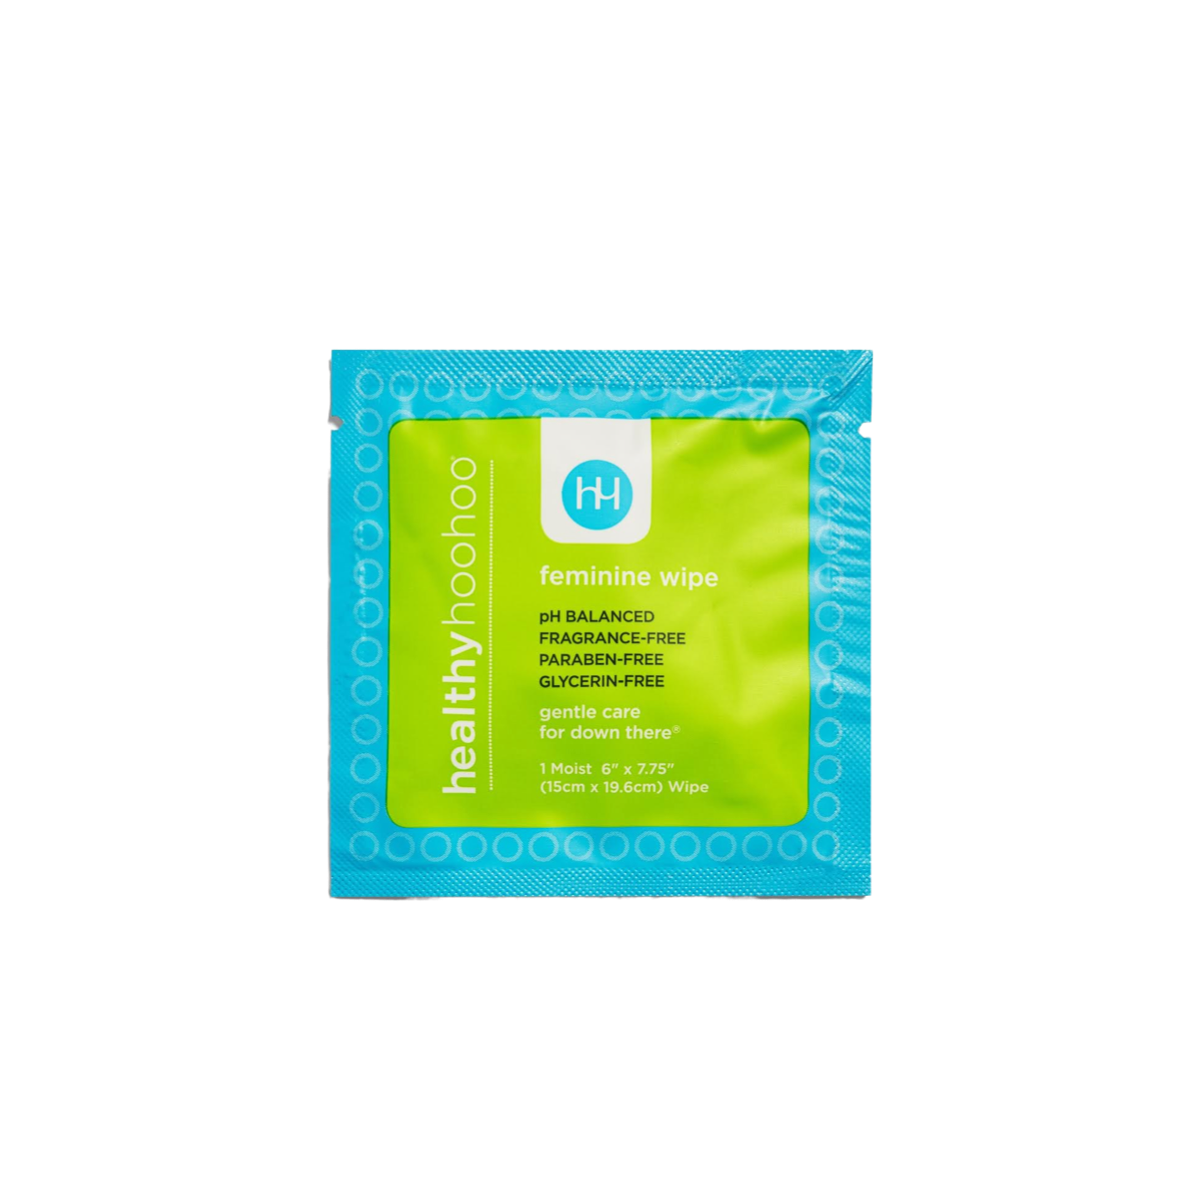 healthy-hoohoo-natural-feminine-wipes-hygiene-green-beauty